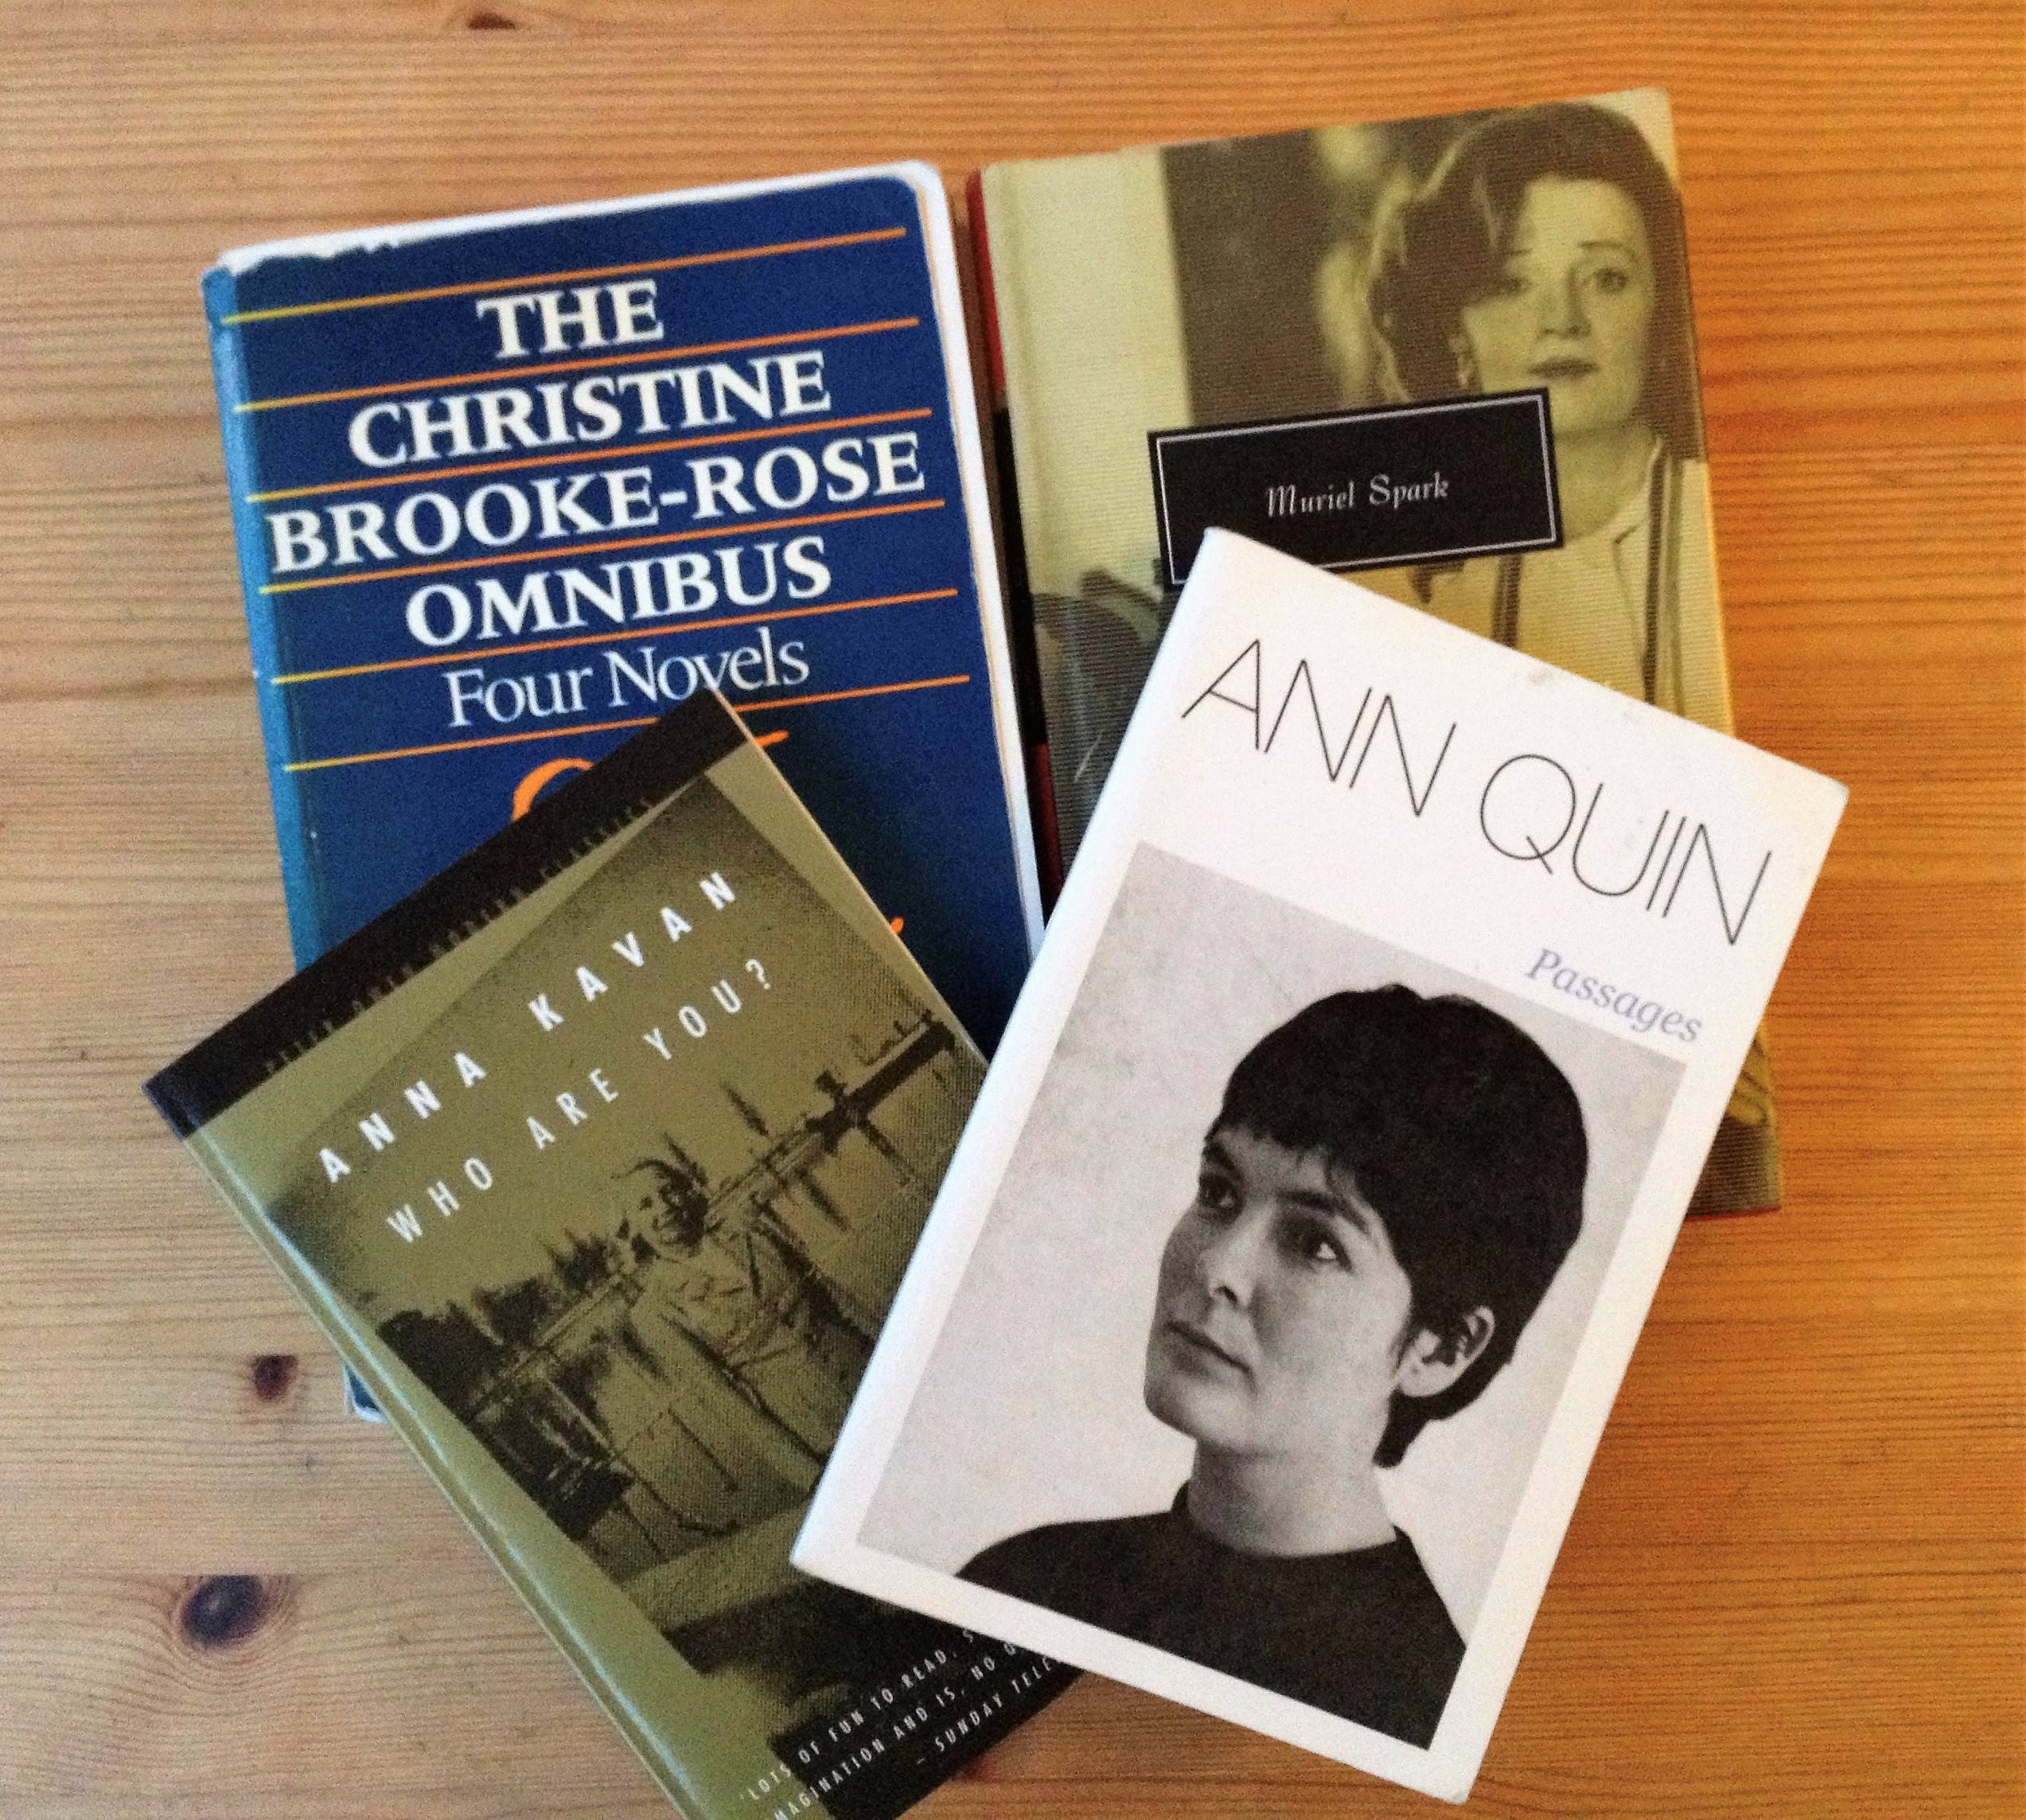 Four books are placed together on a table. Their covers show that books are by Christine Brooke-Rose, Anna Kavan, Ann Quin, and Muriel Spark. It is possible to tell that the Ann Quin book is 'Passages' and the Anna Kavan book is titled 'Who Are You?'.